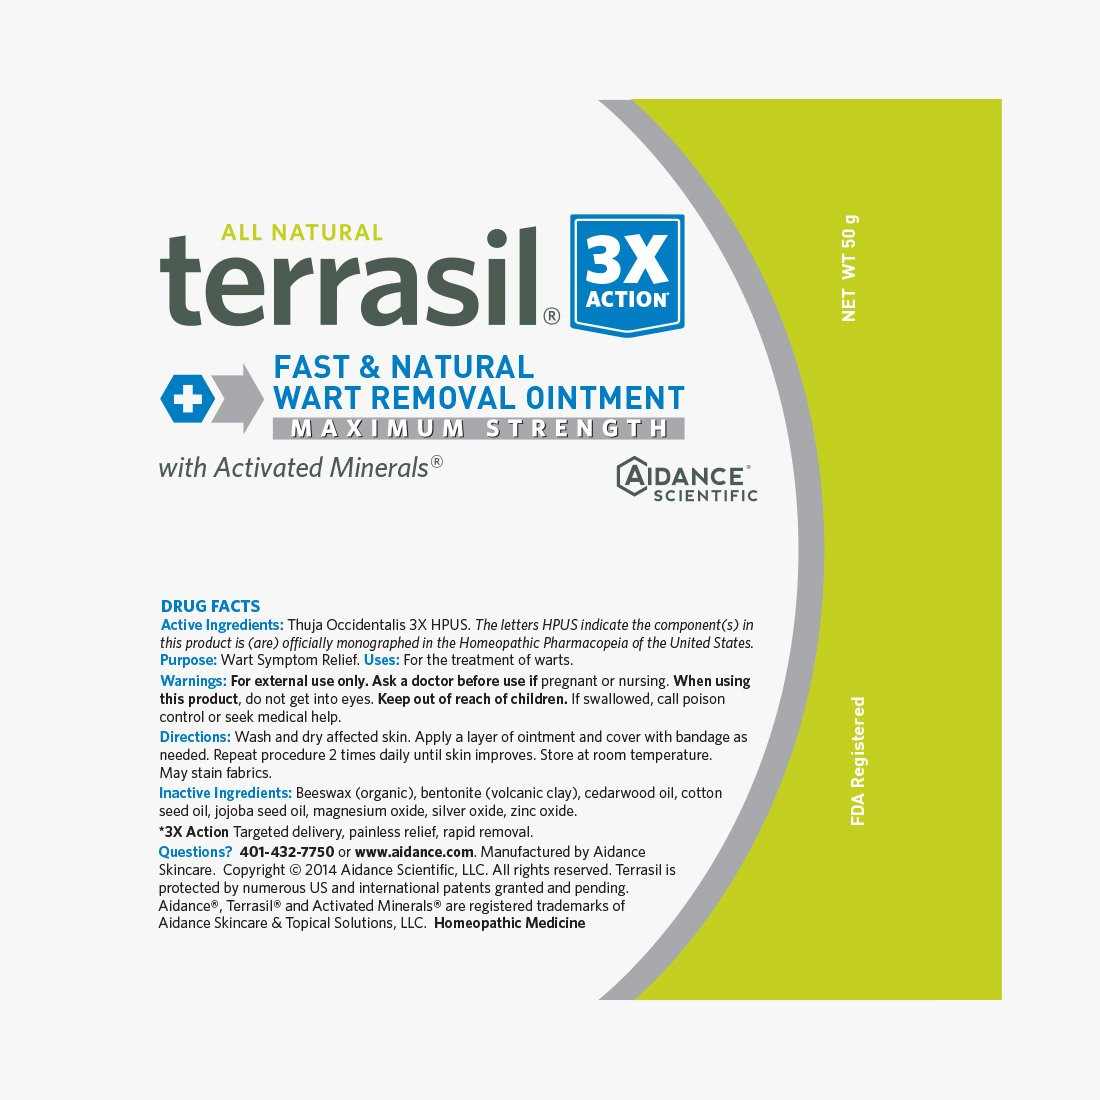 Terrasil Fast & Natural Wart Removal Ointment (50 Gram, Max) by Aidance Skincare & Topical Solutions (Image #1)